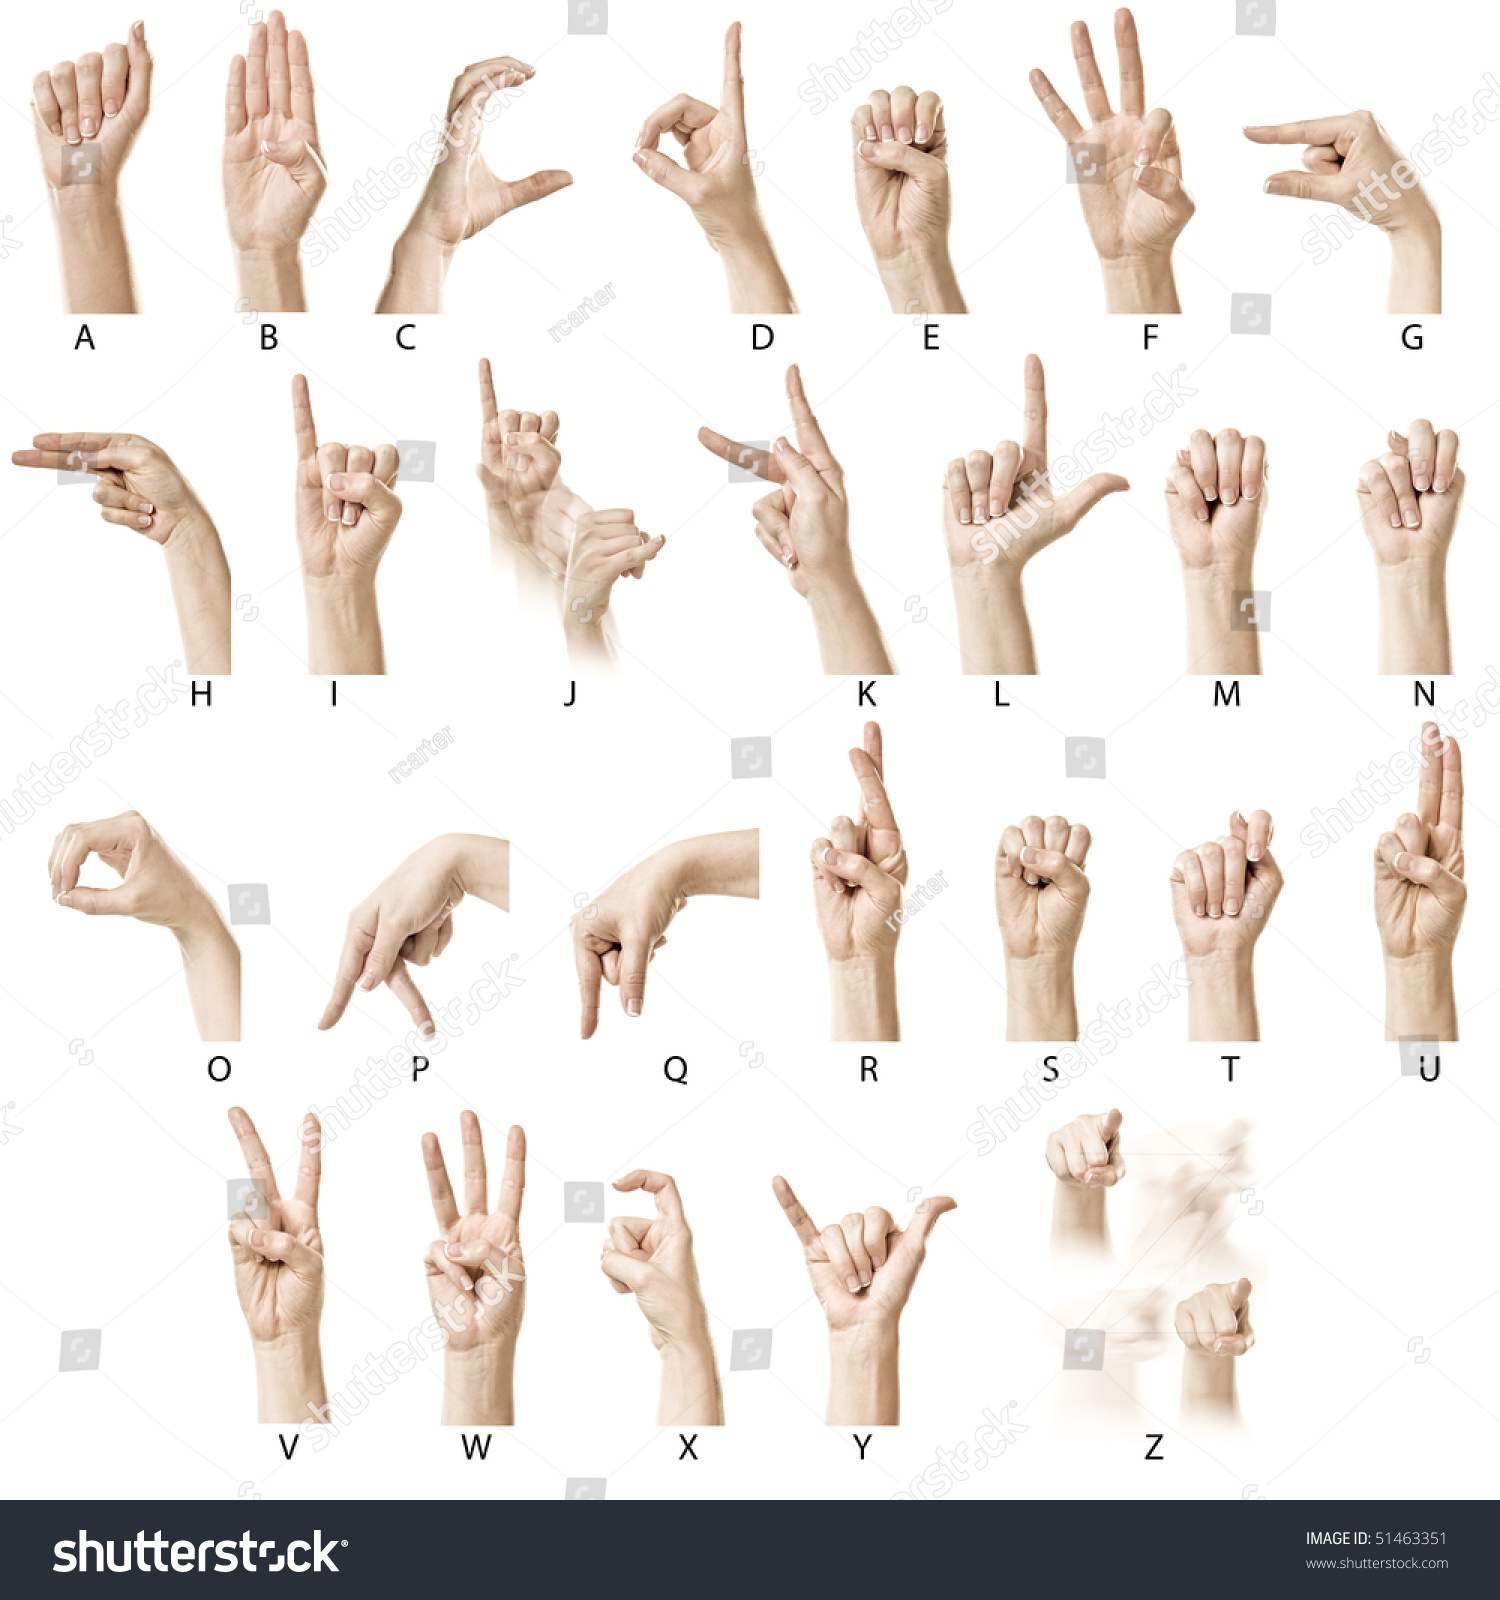 Finger Spelling The Alphabet In American Sign Language